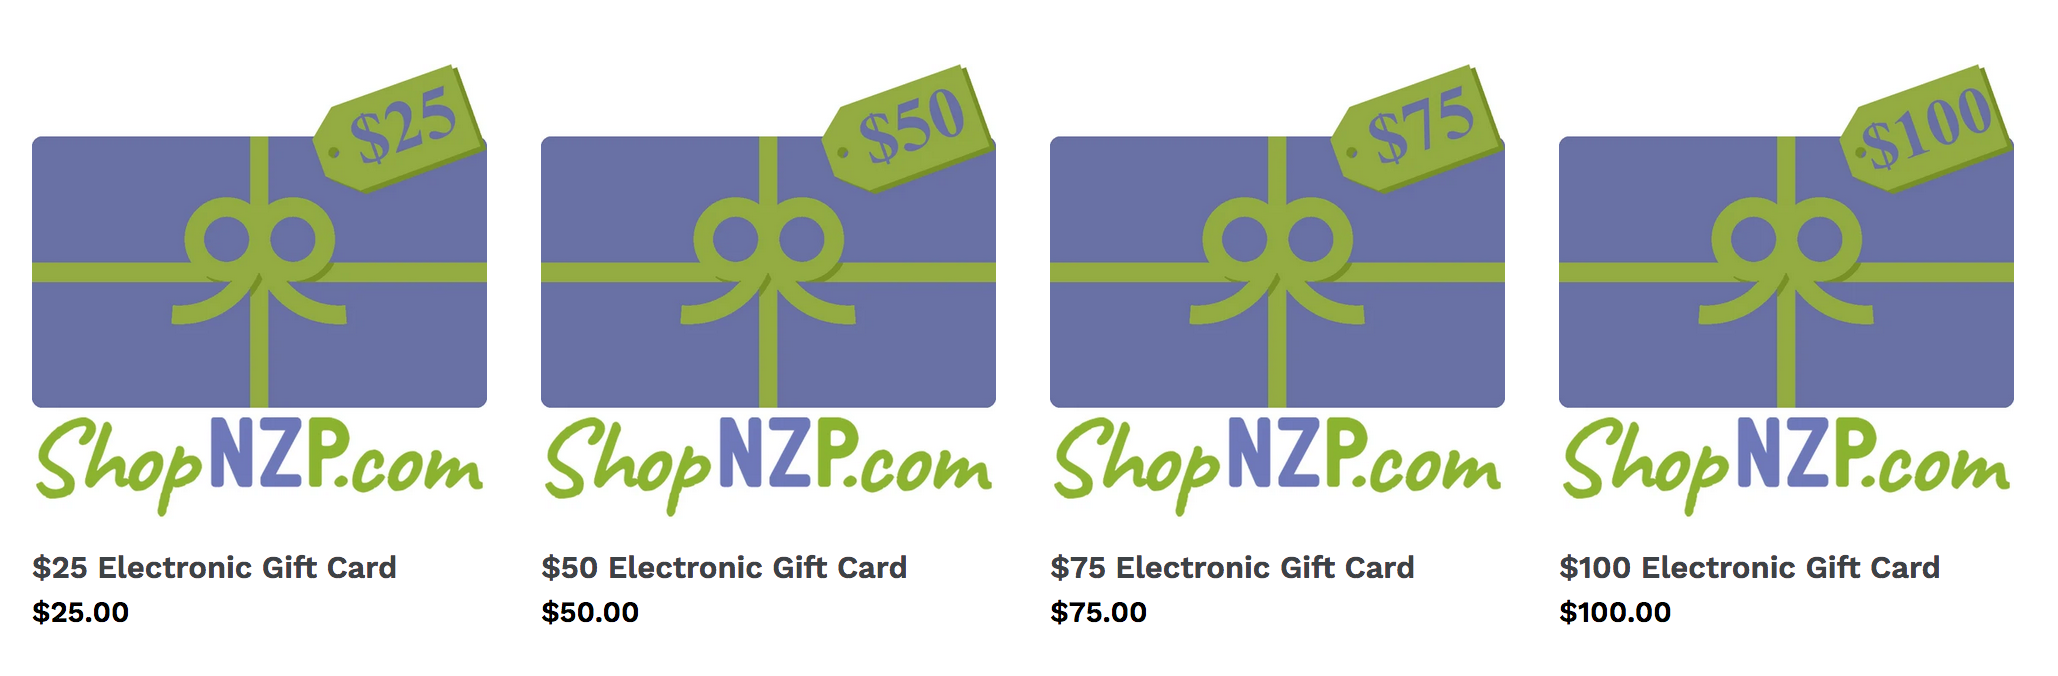 Nancy Zieman Productions Gift Cards available at ShopNZP.com